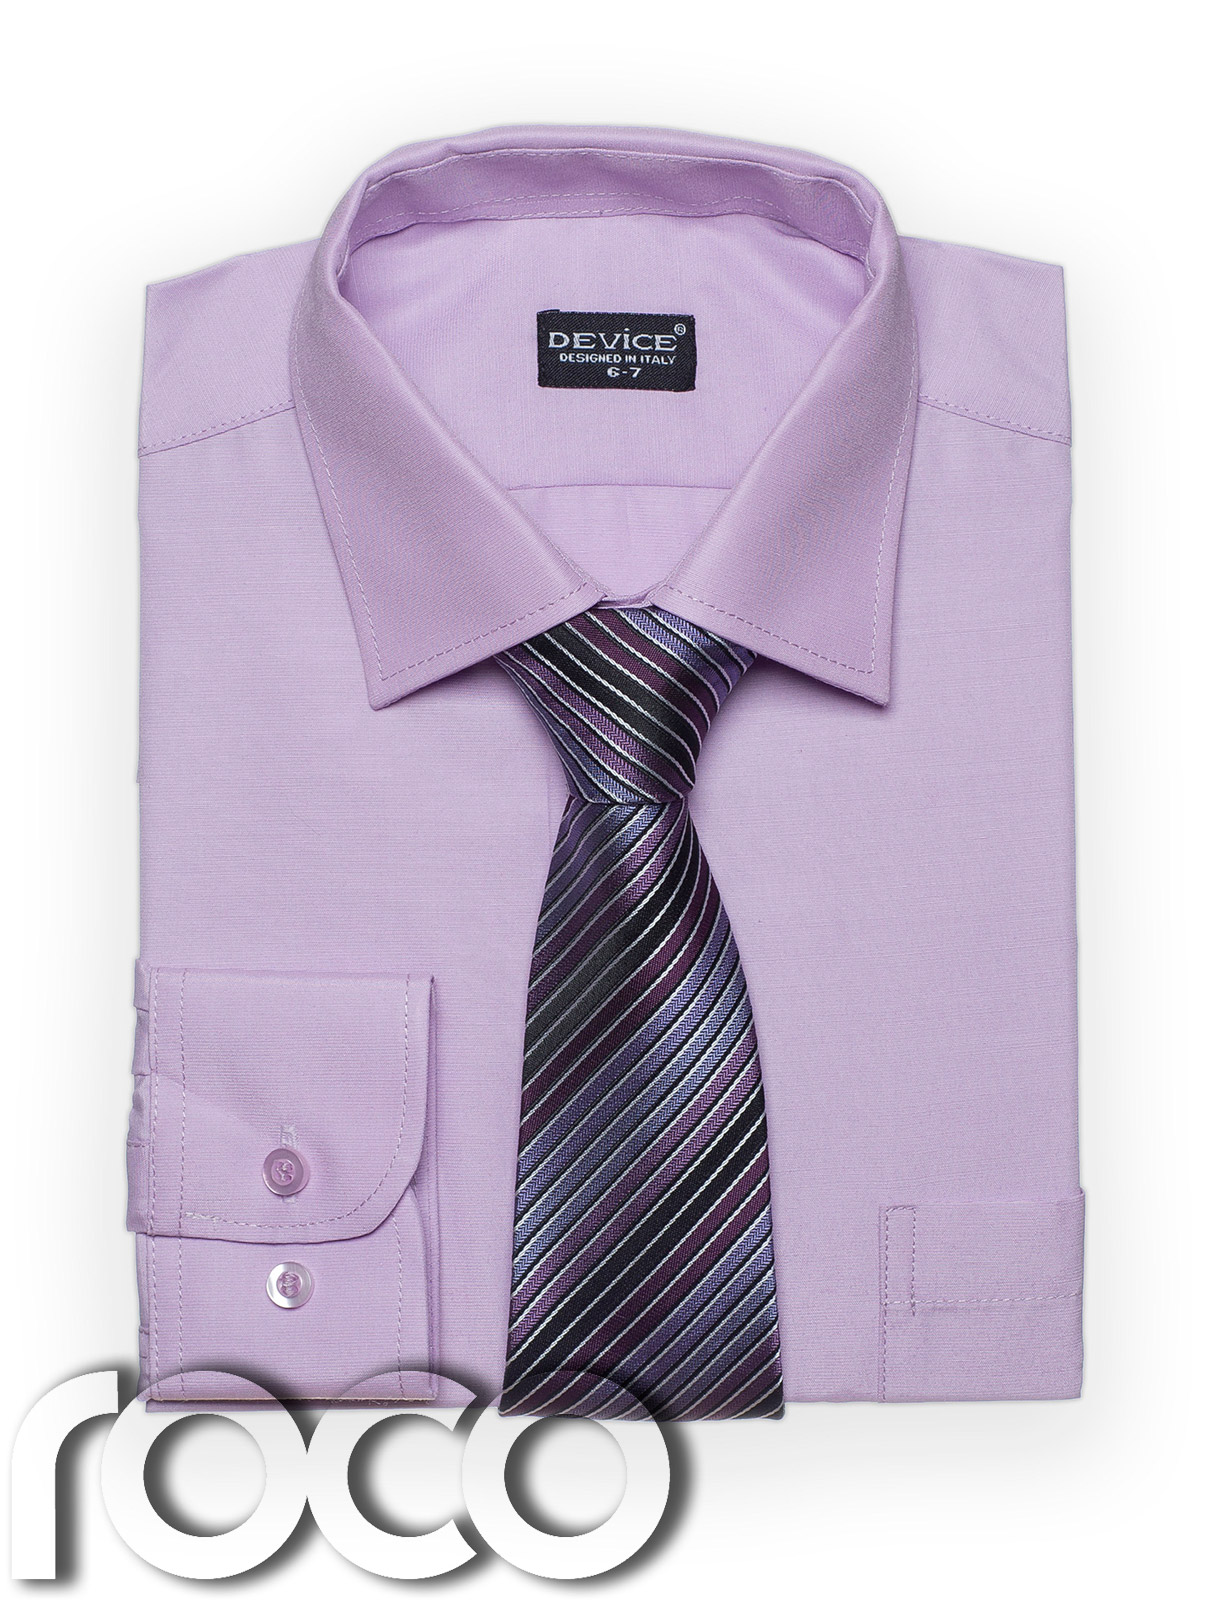 Boys Lilac Shirt Tie set for Formal Prom Confirmation ... - photo#22